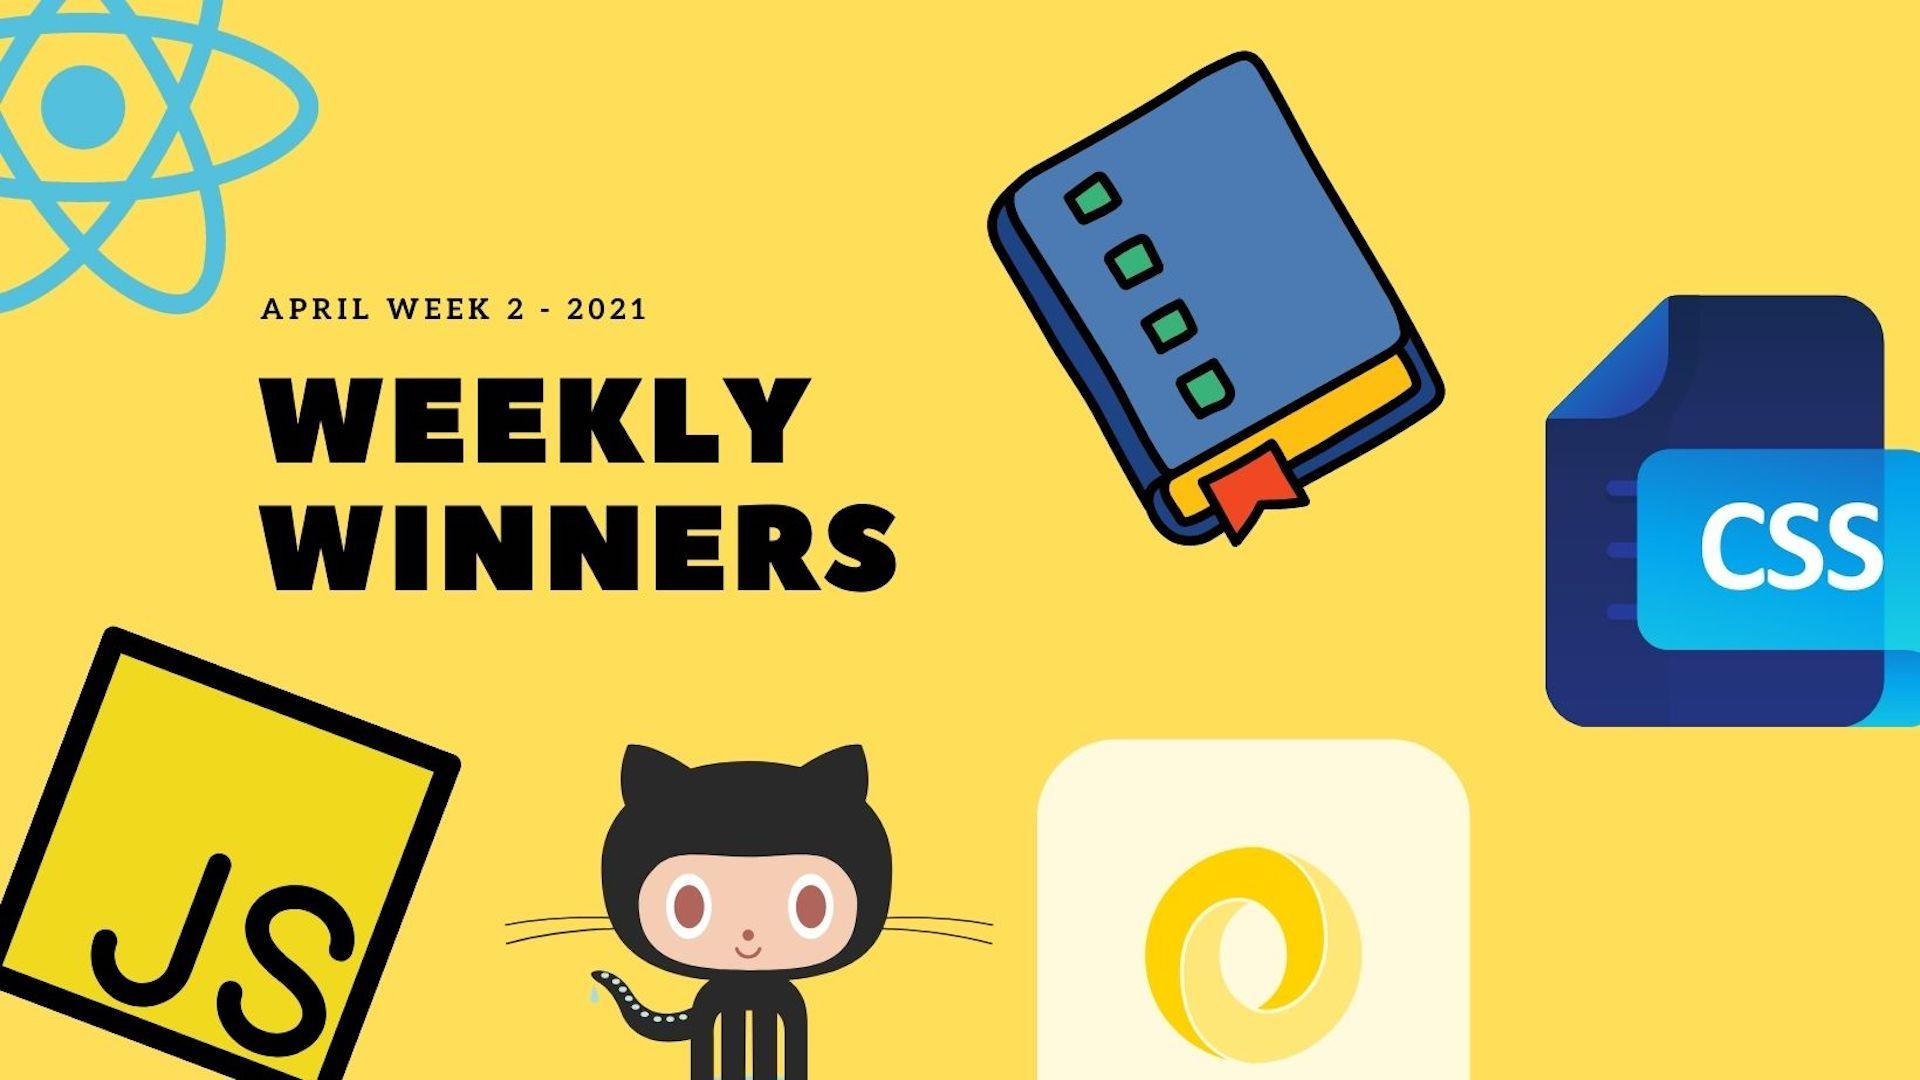 DevDojo Weekly Winners Week 2 April 2021